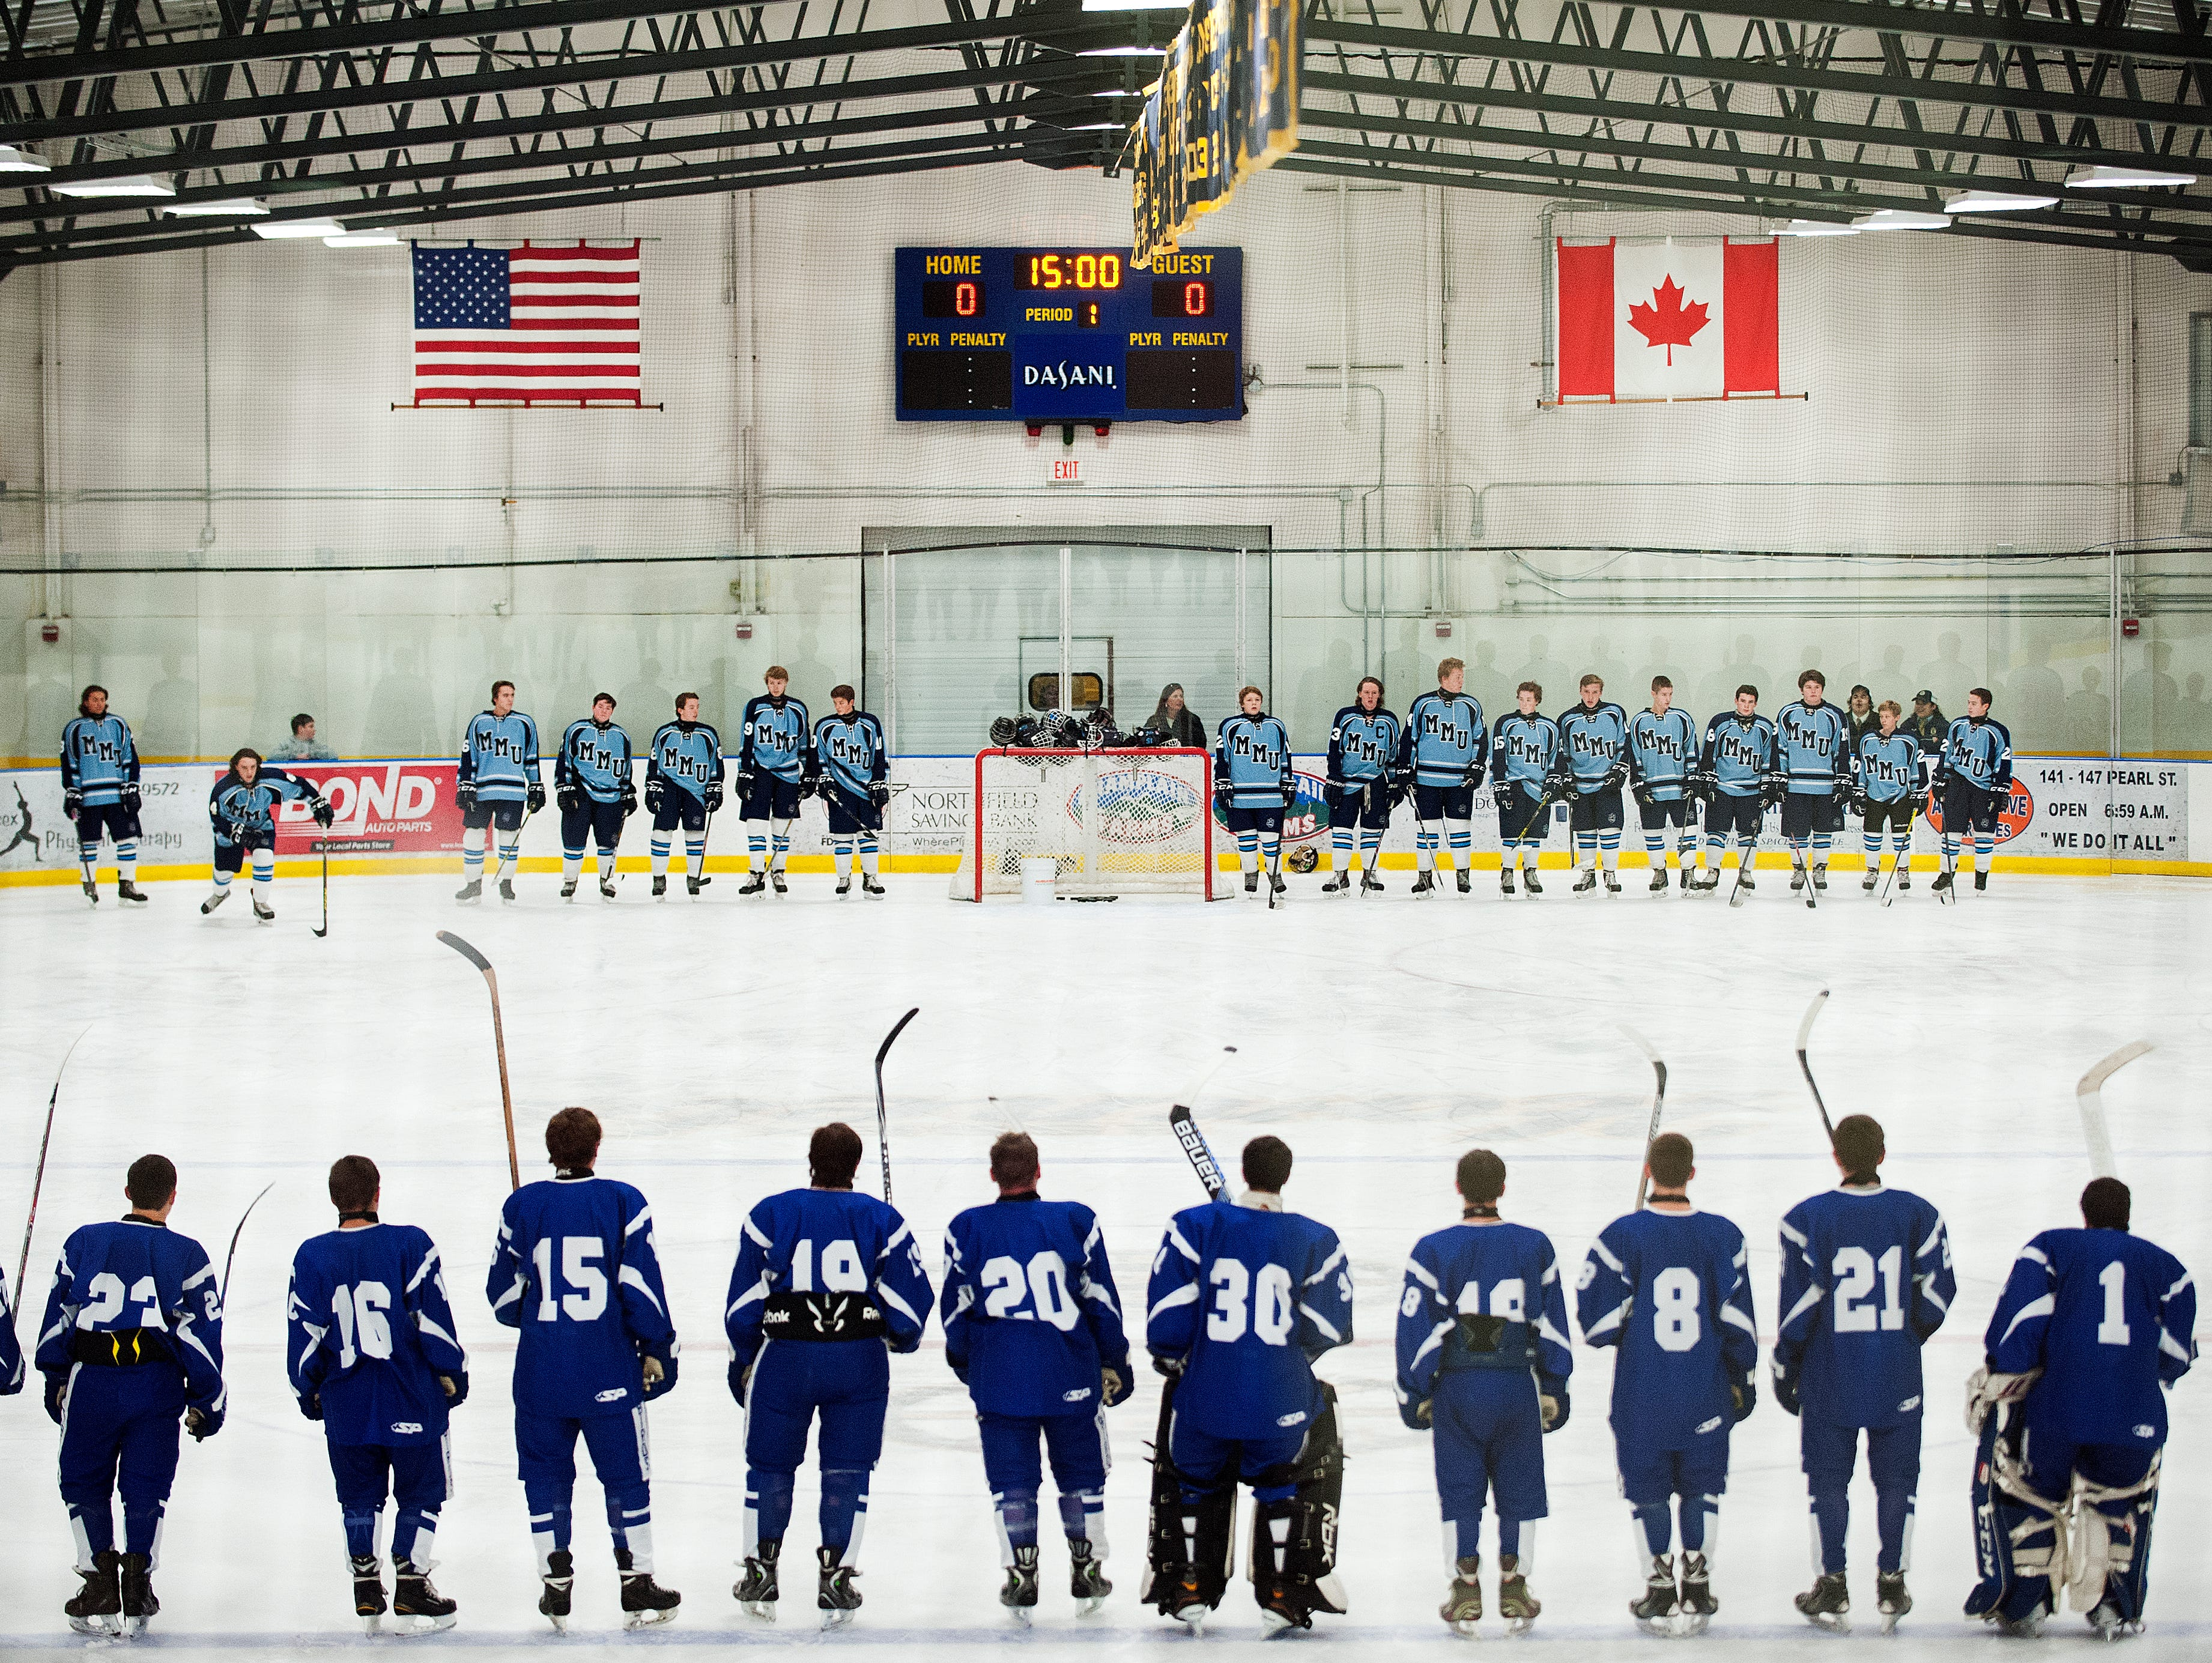 The teams line up for player introductions before the start of the boys hockey game between Missisquoi Valley and Mount Mansfield at the Essex Skating Facility on Saturday afternoon December 5, 2015 in Essex.